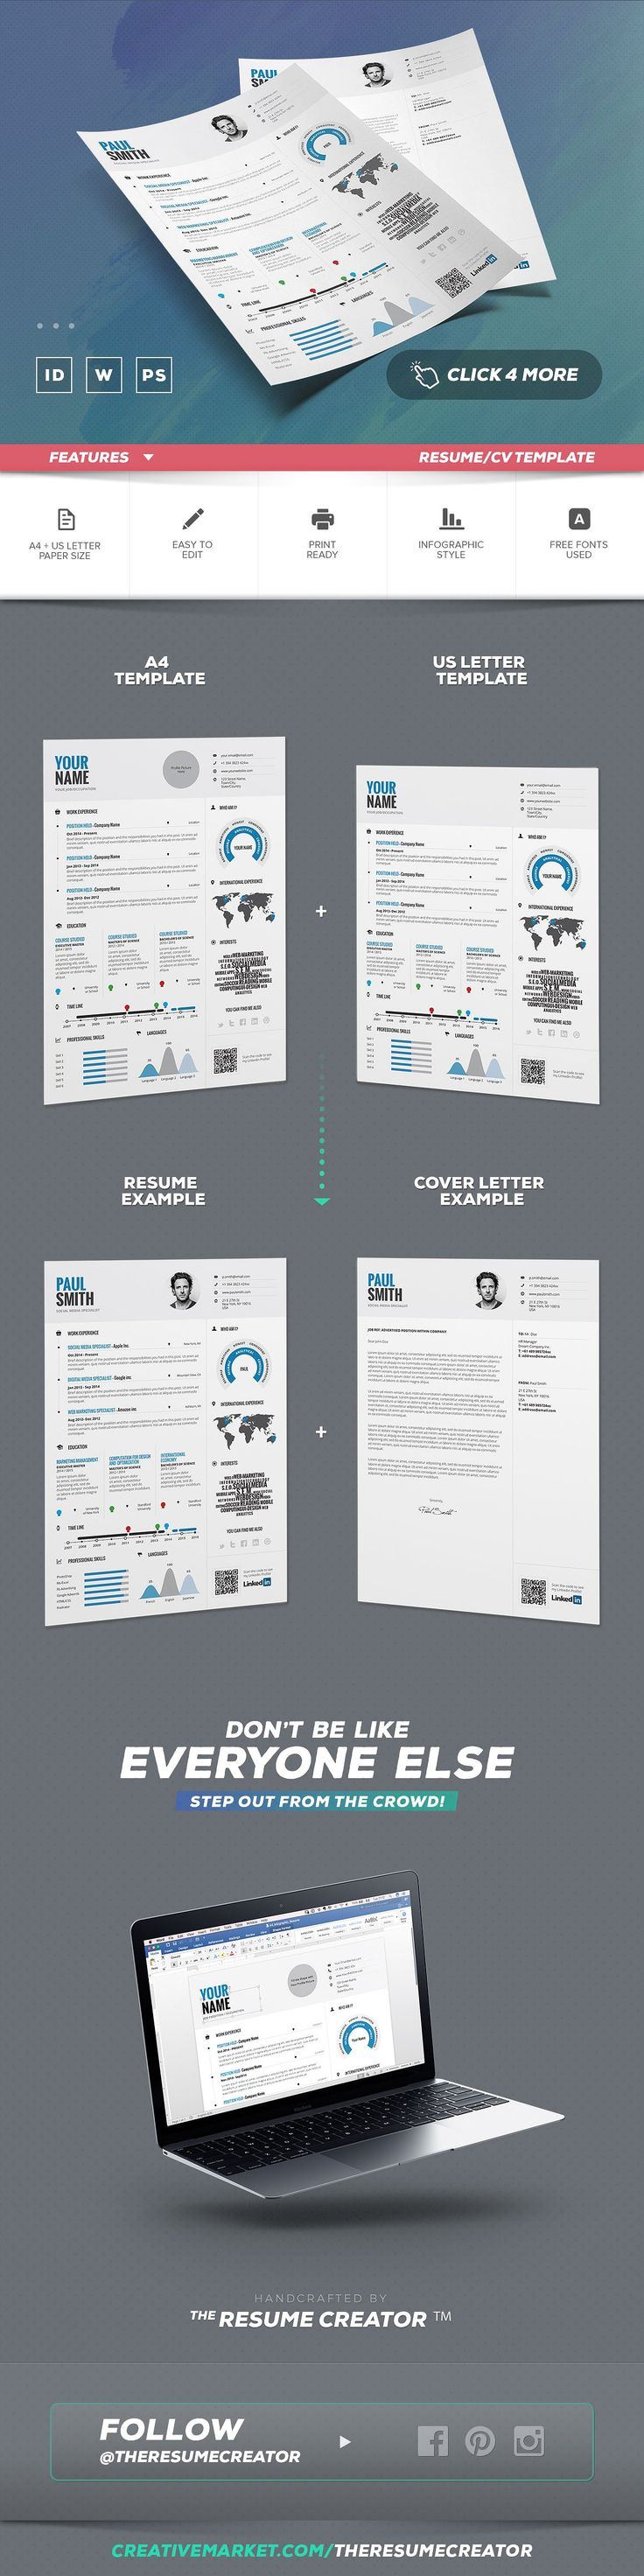 Infographic Resume/Cv Template Vol.1 by TheResumeCreator on @creativemarket